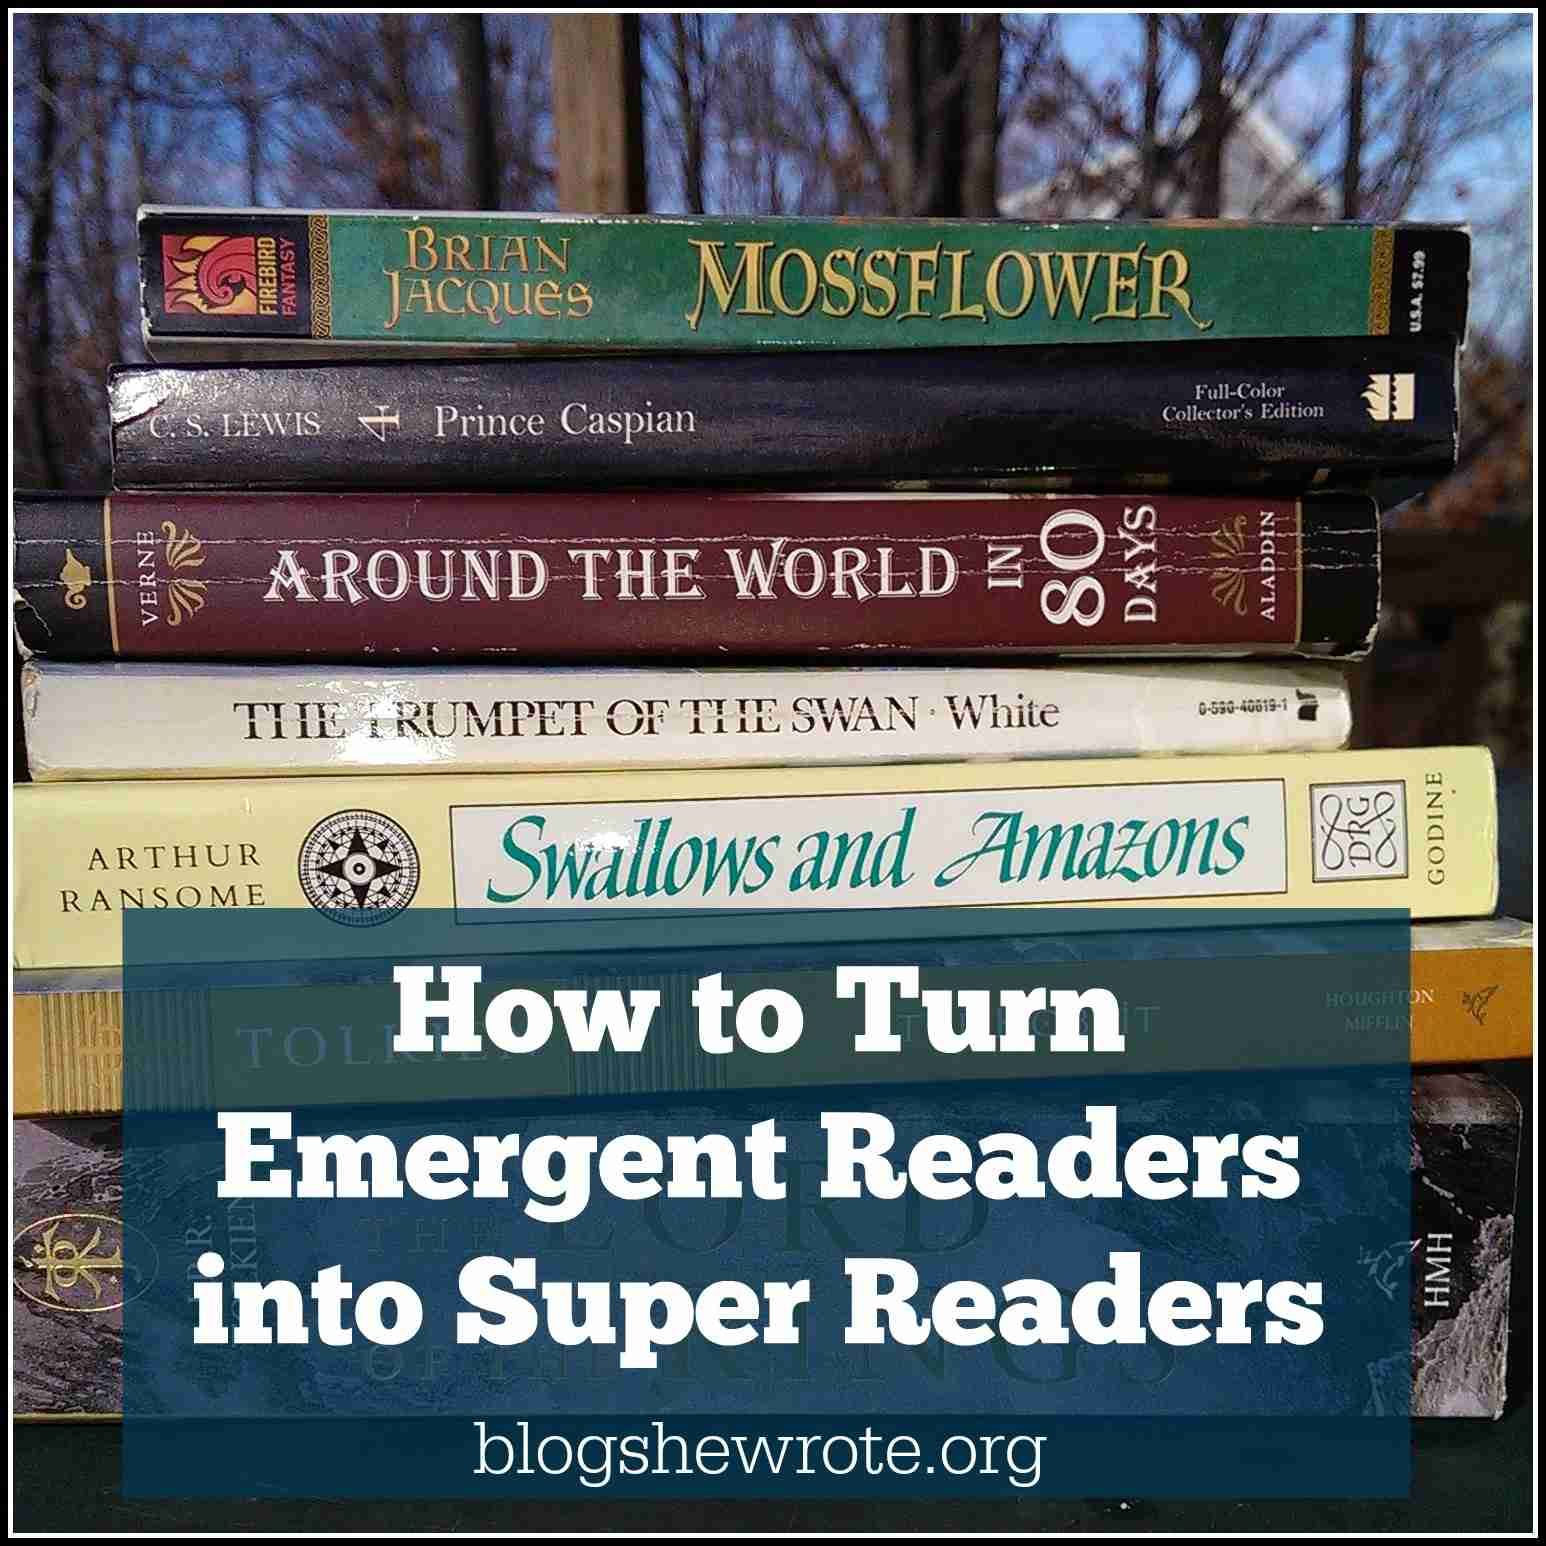 Blog, She Wrote: How to Turn Emergent Readers into Super Readers